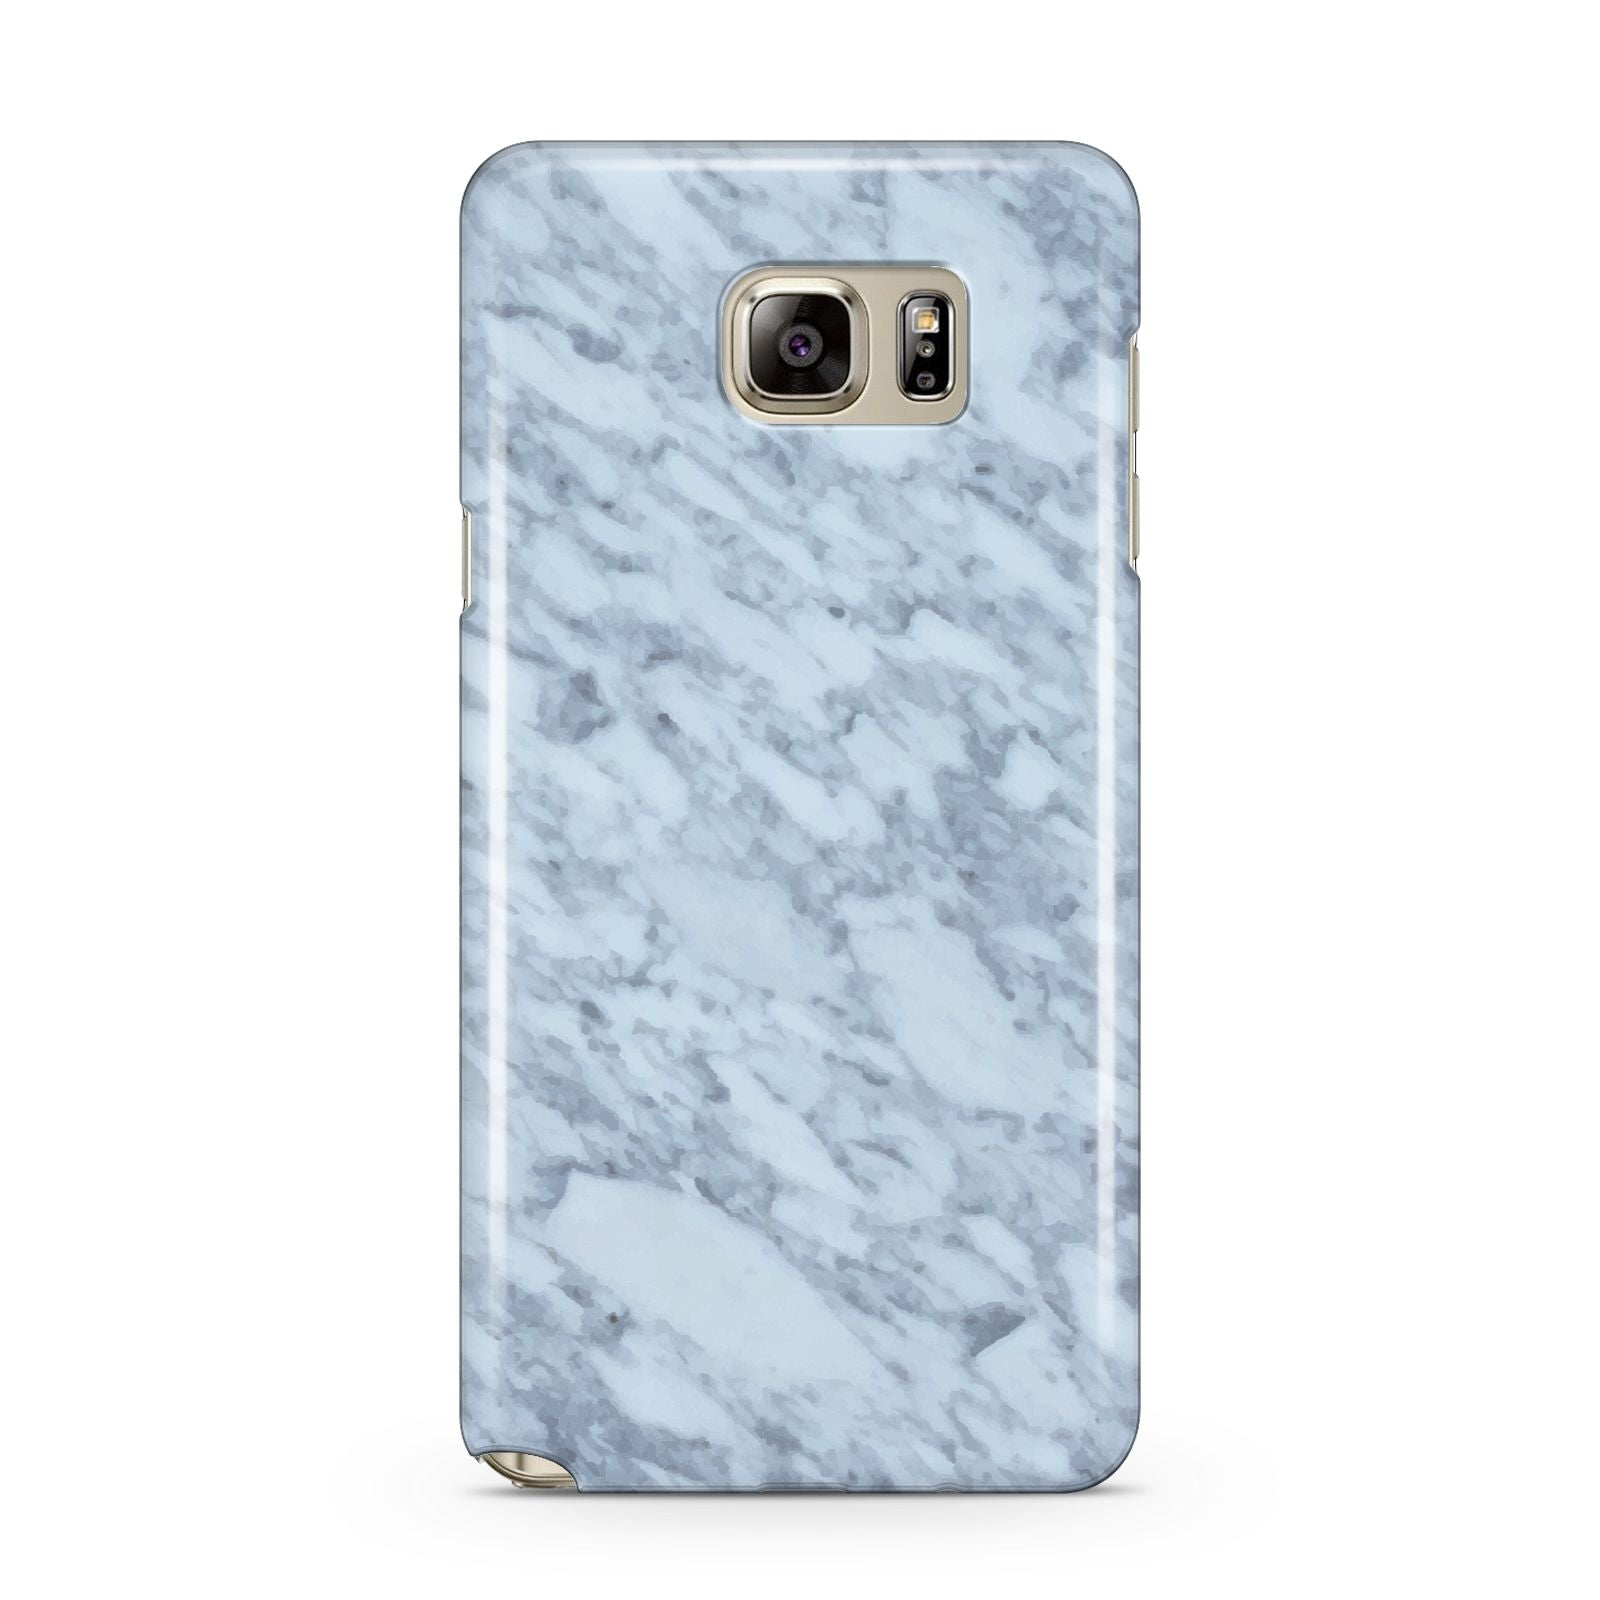 Faux Marble Grey 2 Samsung Galaxy Note 5 Case